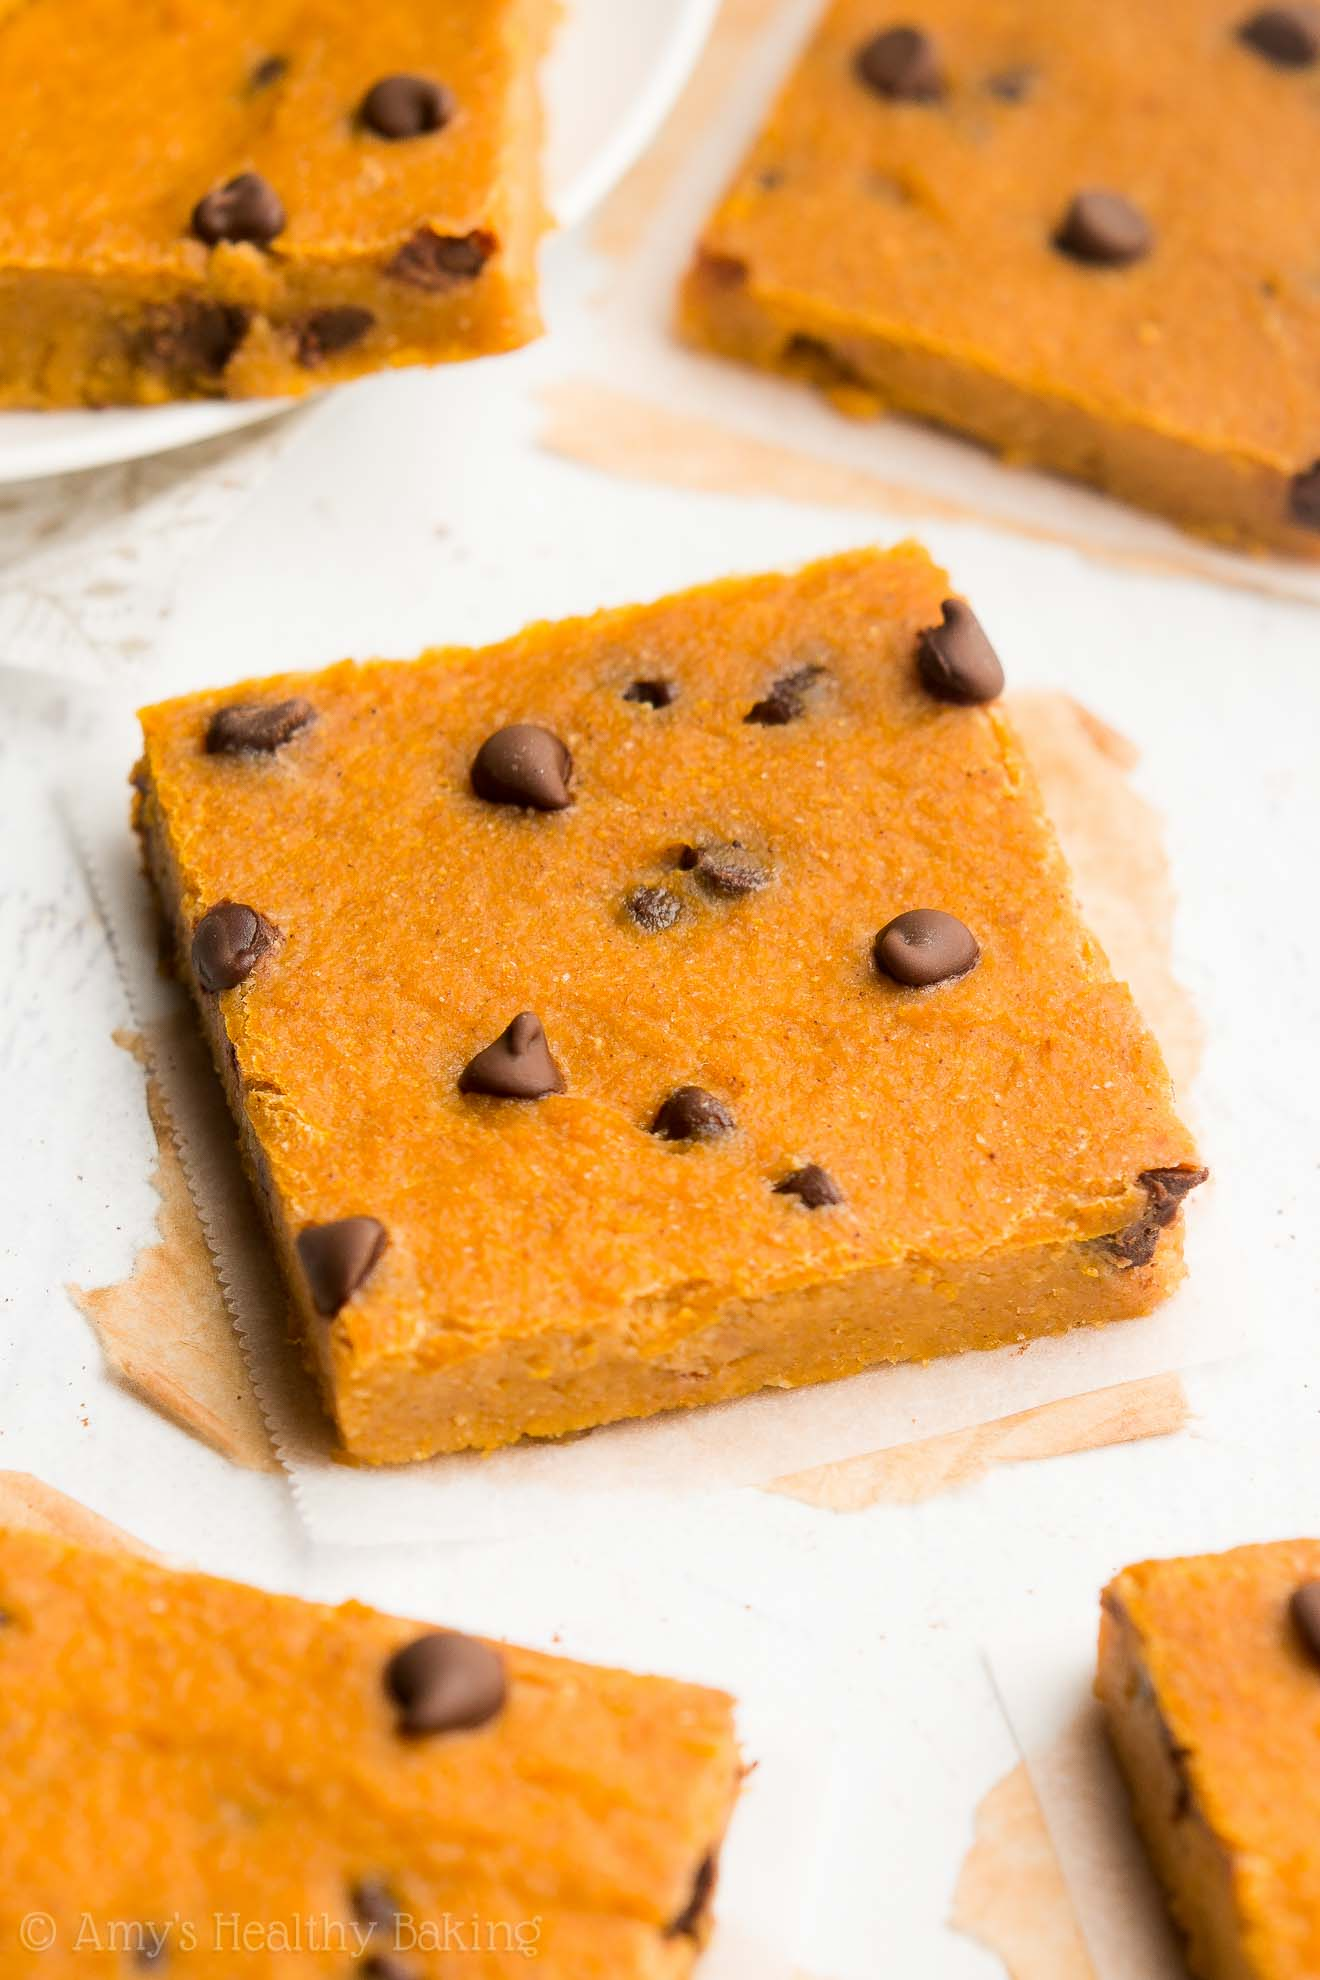 Pumpkin pie flavor + fudgy brownie texture + chocolate chips = AMAZING! And this easy dessert is secretly healthy enough for breakfast!